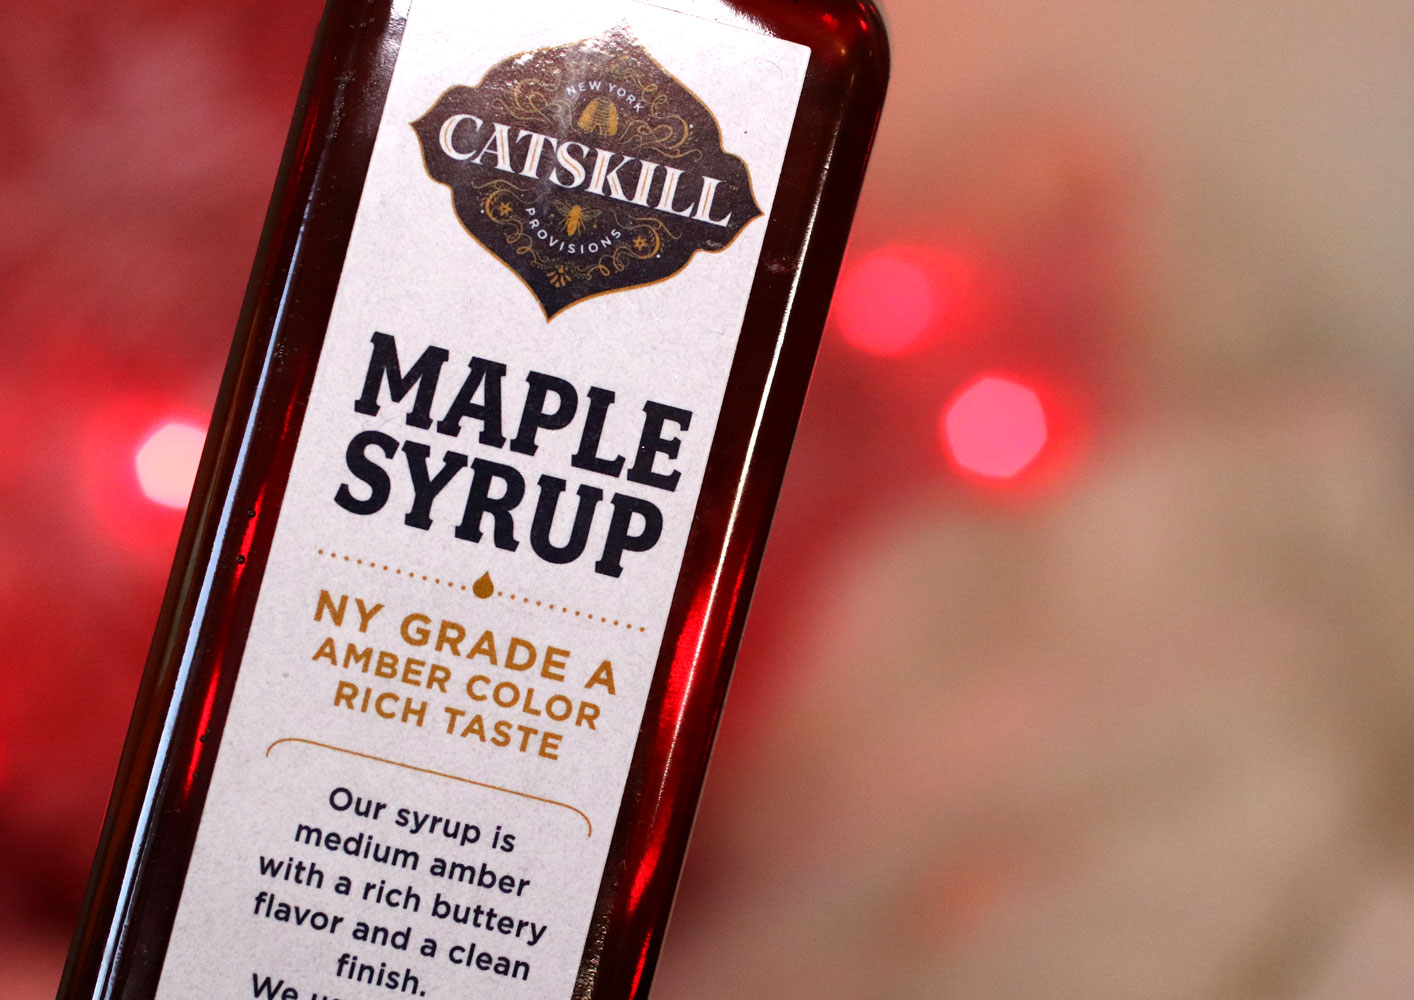 Woman Owned Holiday Gift Guide 2019 - Catskill Provisions maple syrup foodie gifts